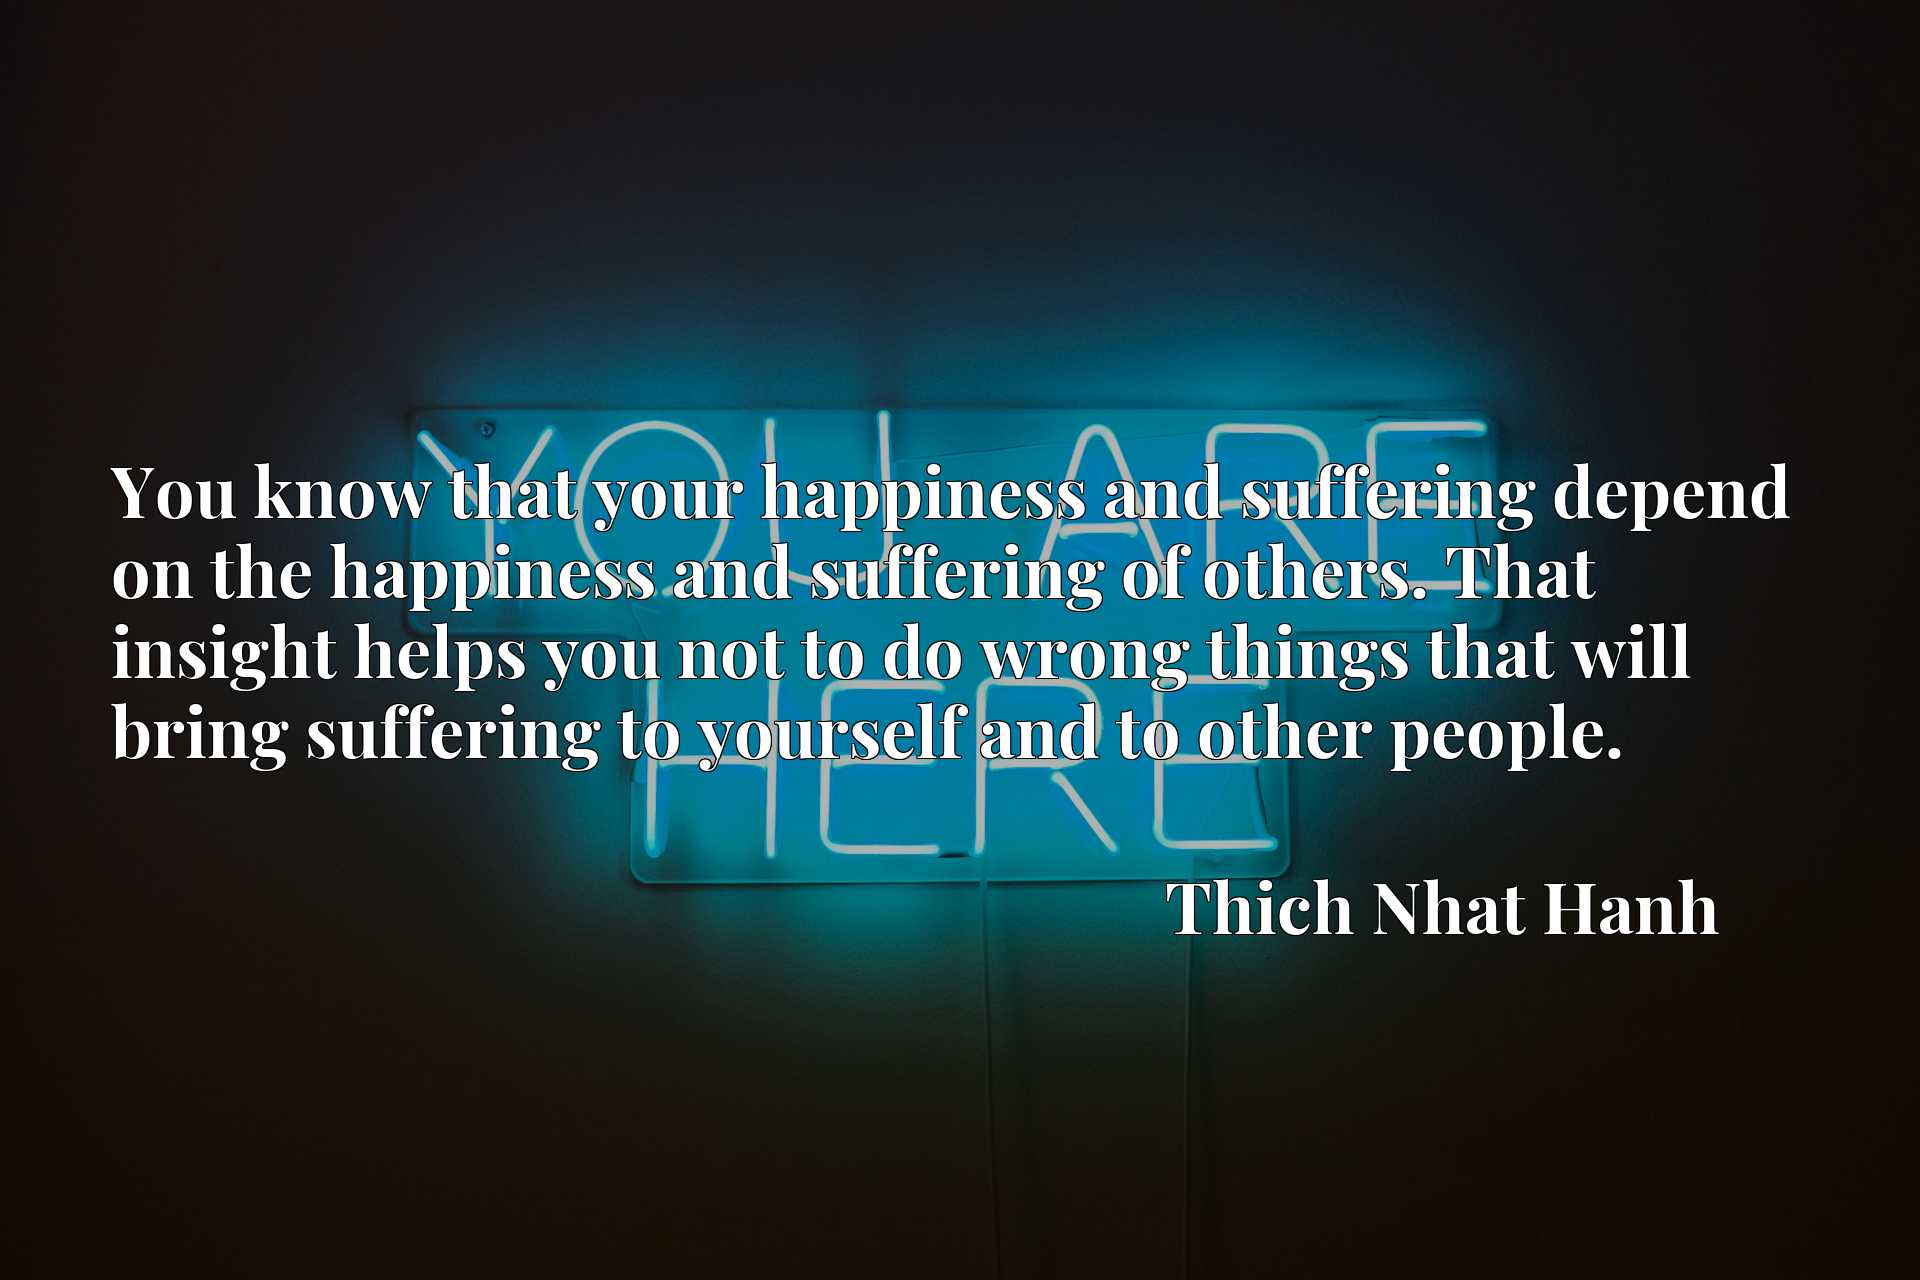 You know that your happiness and suffering depend on the happiness and suffering of others. That insight helps you not to do wrong things that will bring suffering to yourself and to other people.